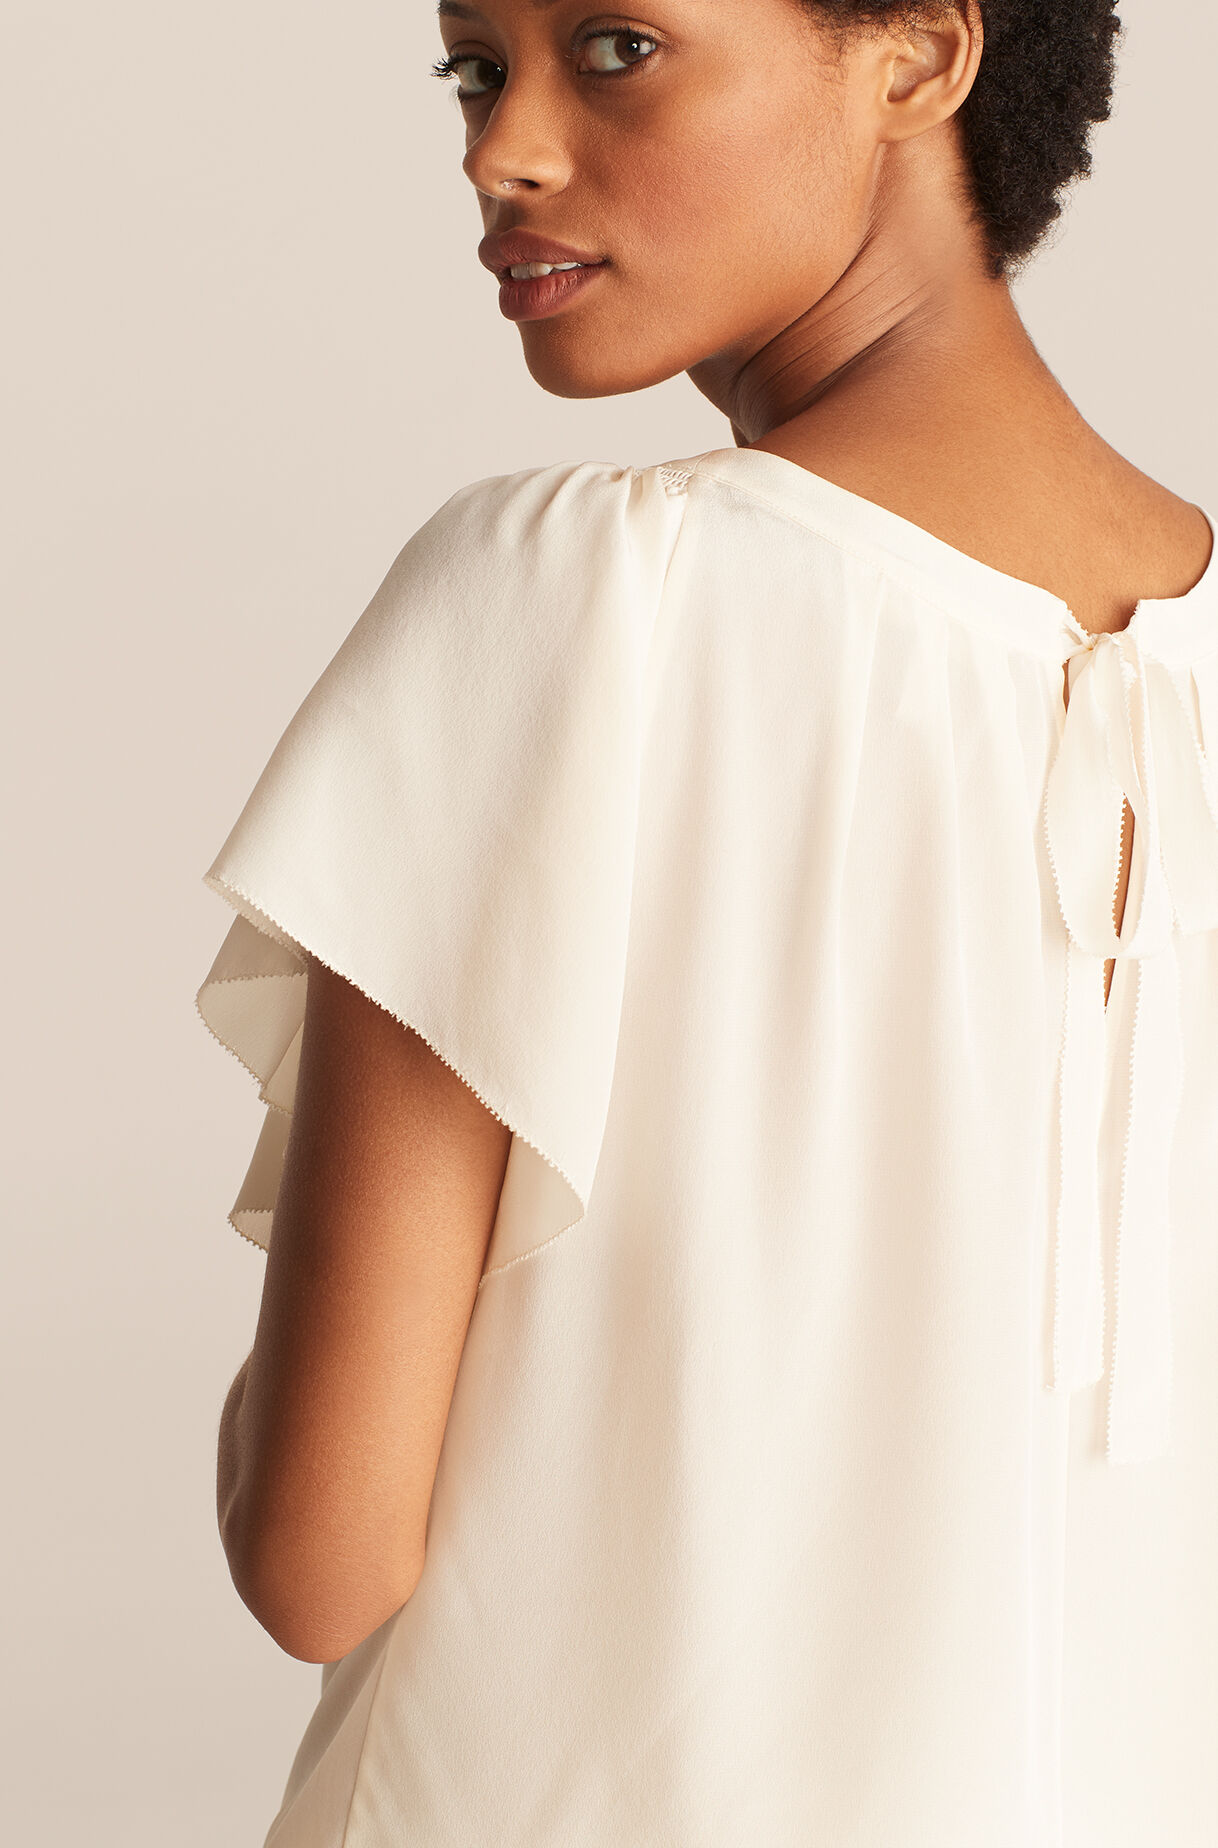 Ruched Round Neck Blouse, , large